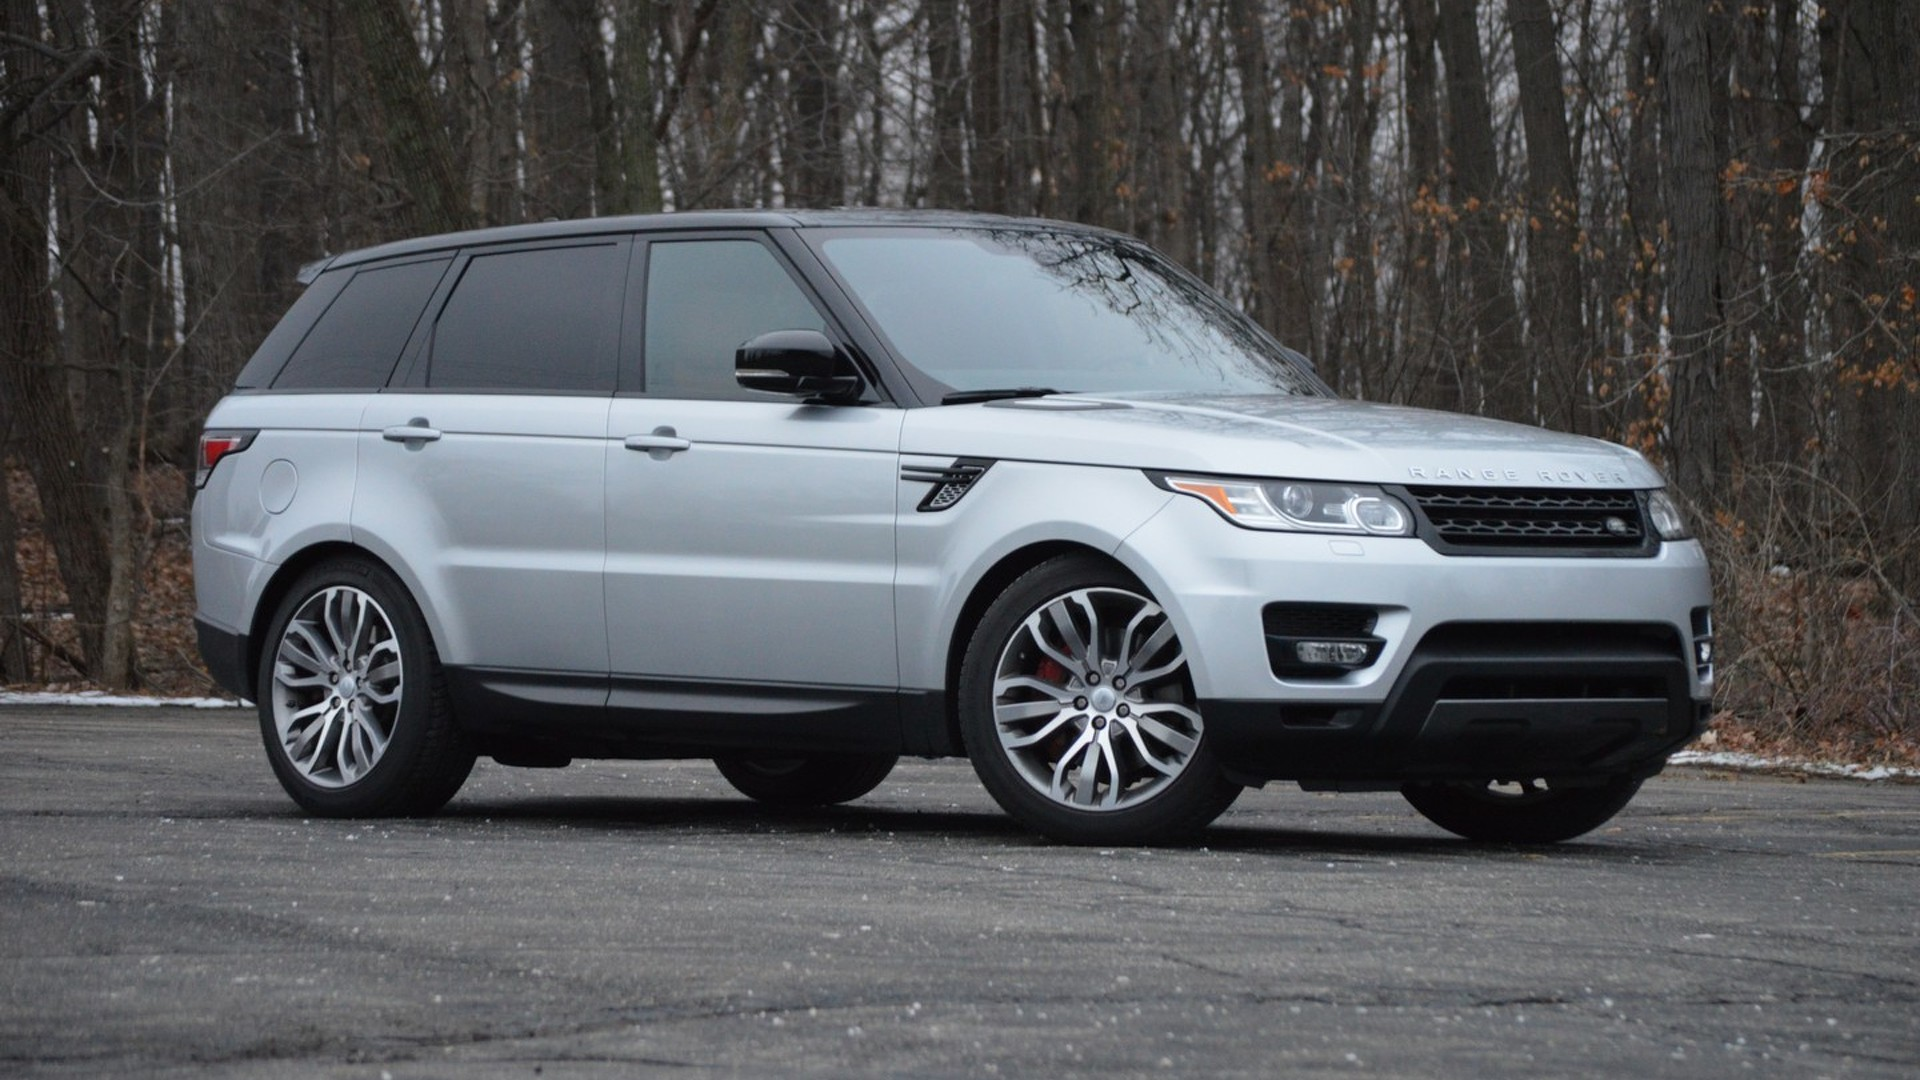 Land Rover Range Rover Sport News and Reviews